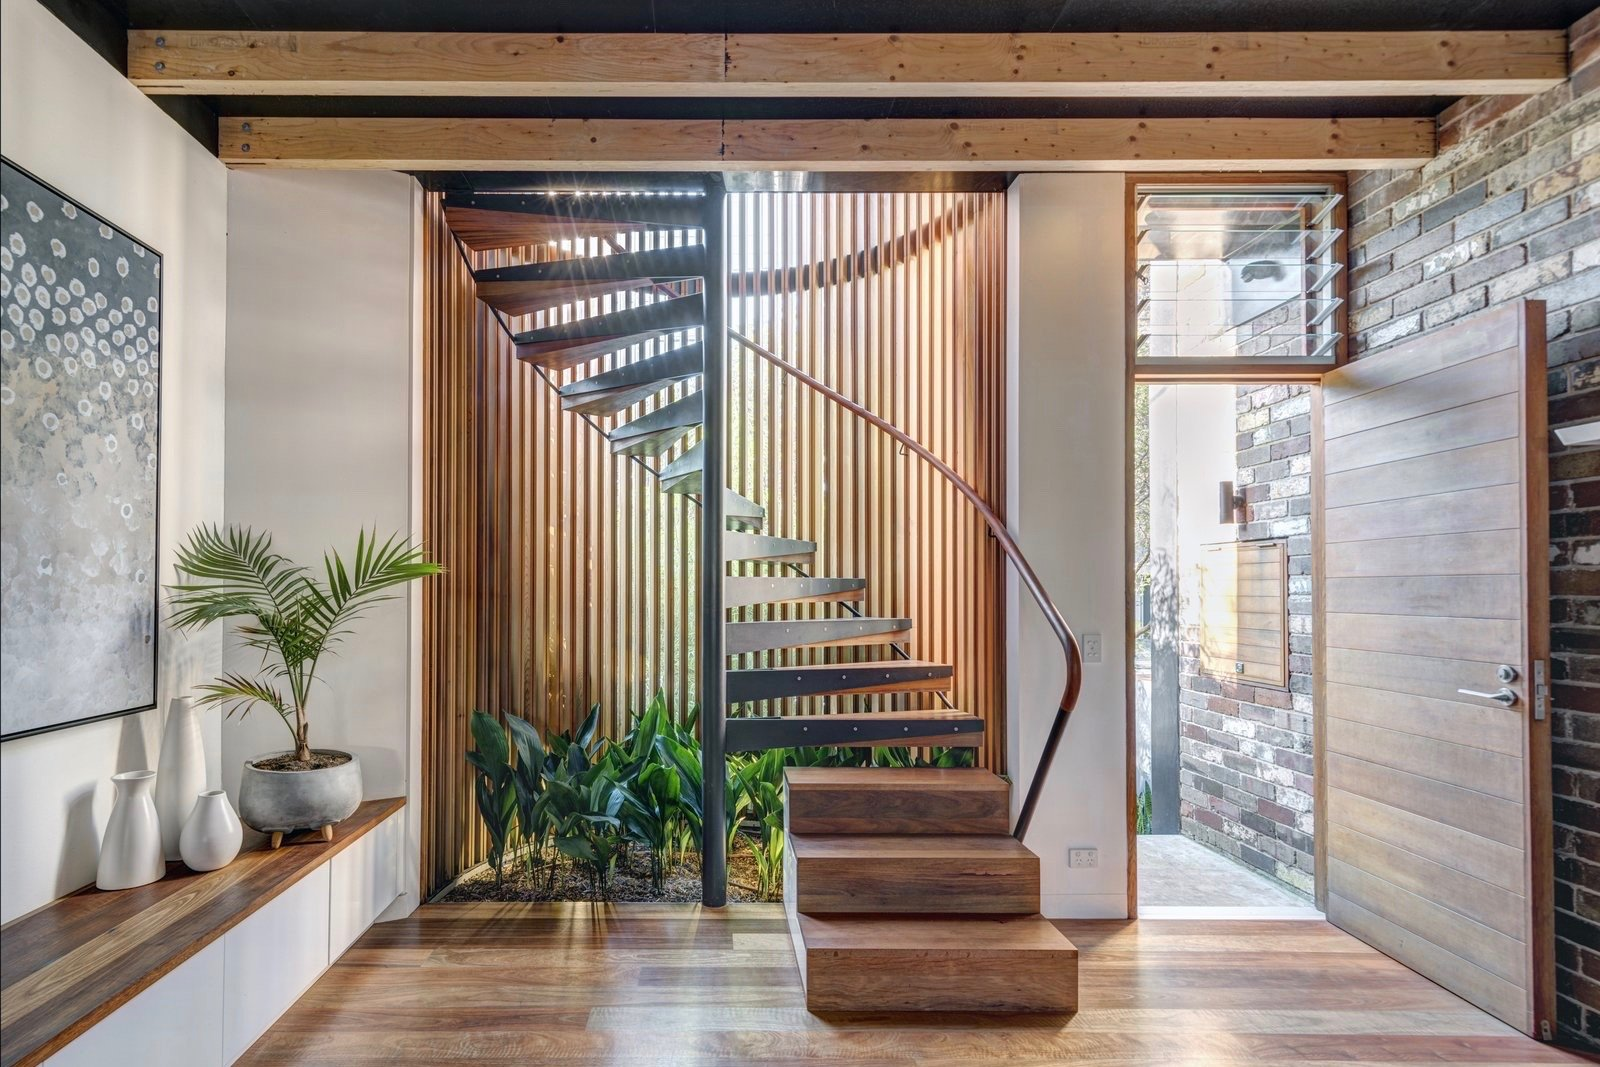 a-cylindrical-glass-staircase-with-western-red-cedar-and-painted-steel-mullions-dominates-the-front-of-the-house-the-stair-treads-along-with-the-floor-are-made-of-recycled-spotted-gum